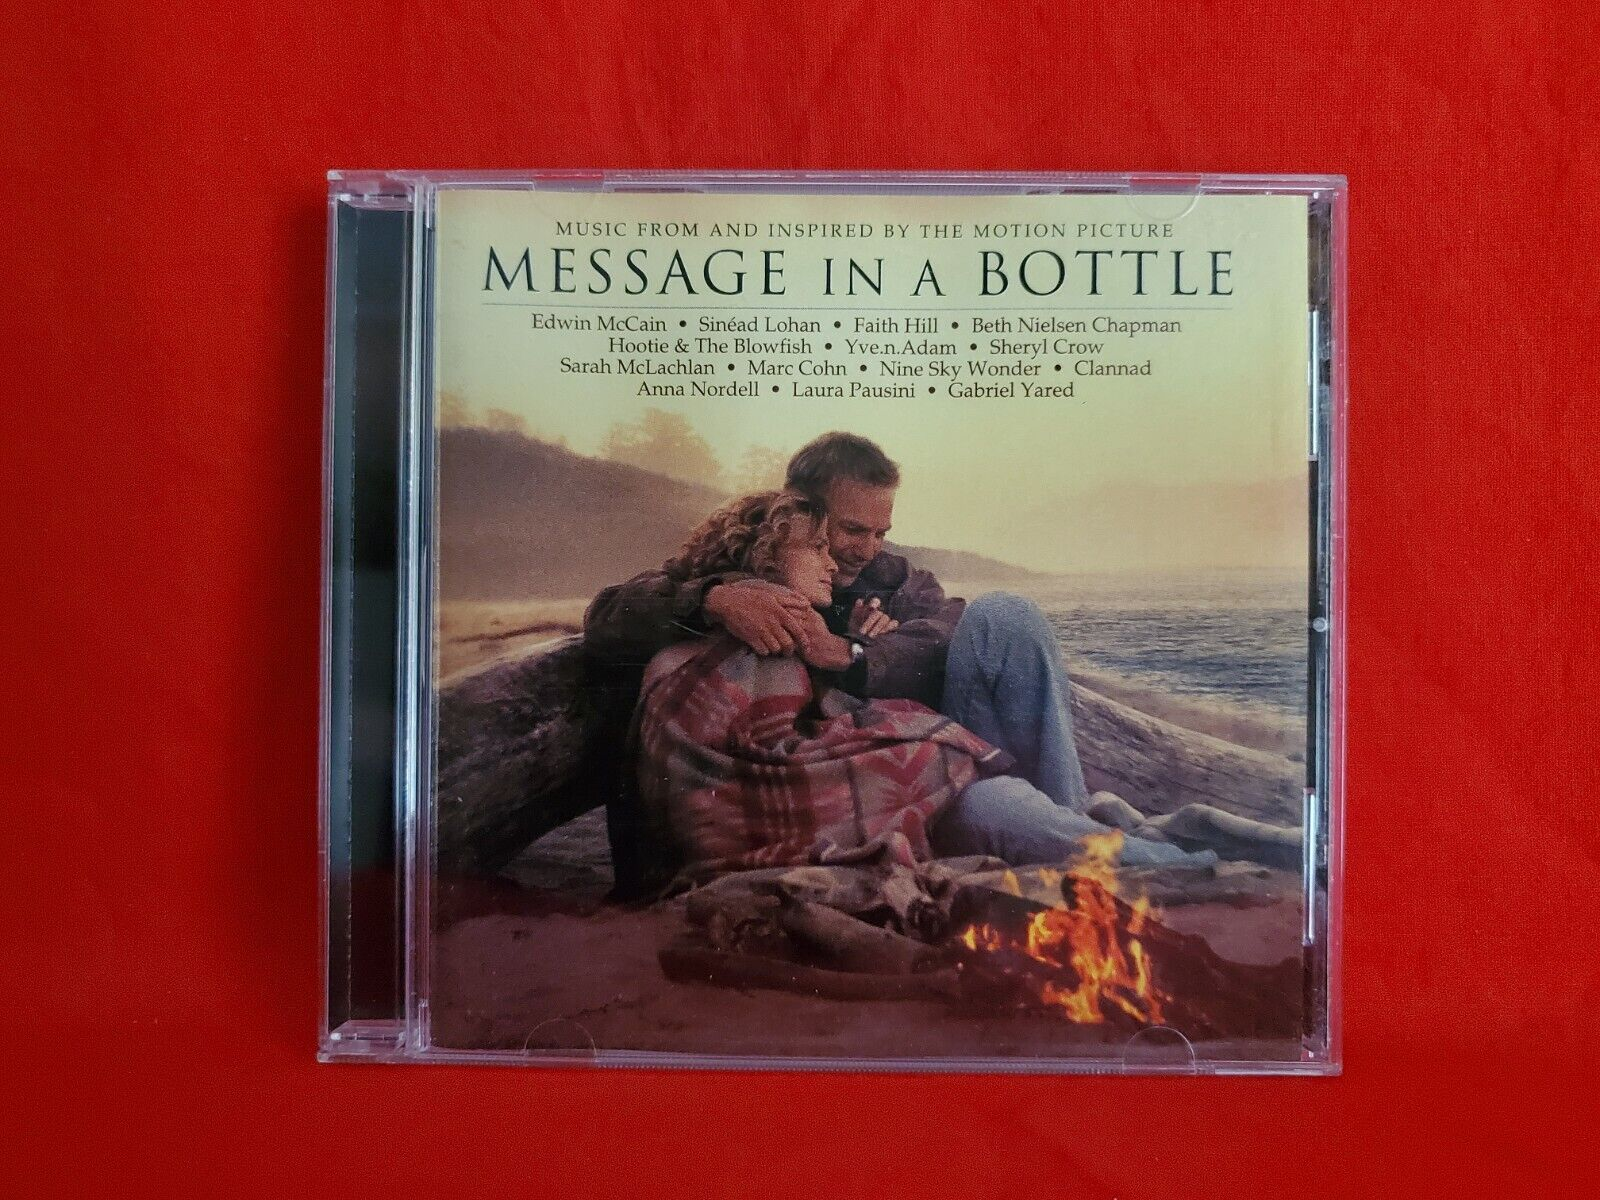 Message In A Bottle 1999 Atlantic Soundtrack CD Gabriel Yared, Various Artists - $1.97